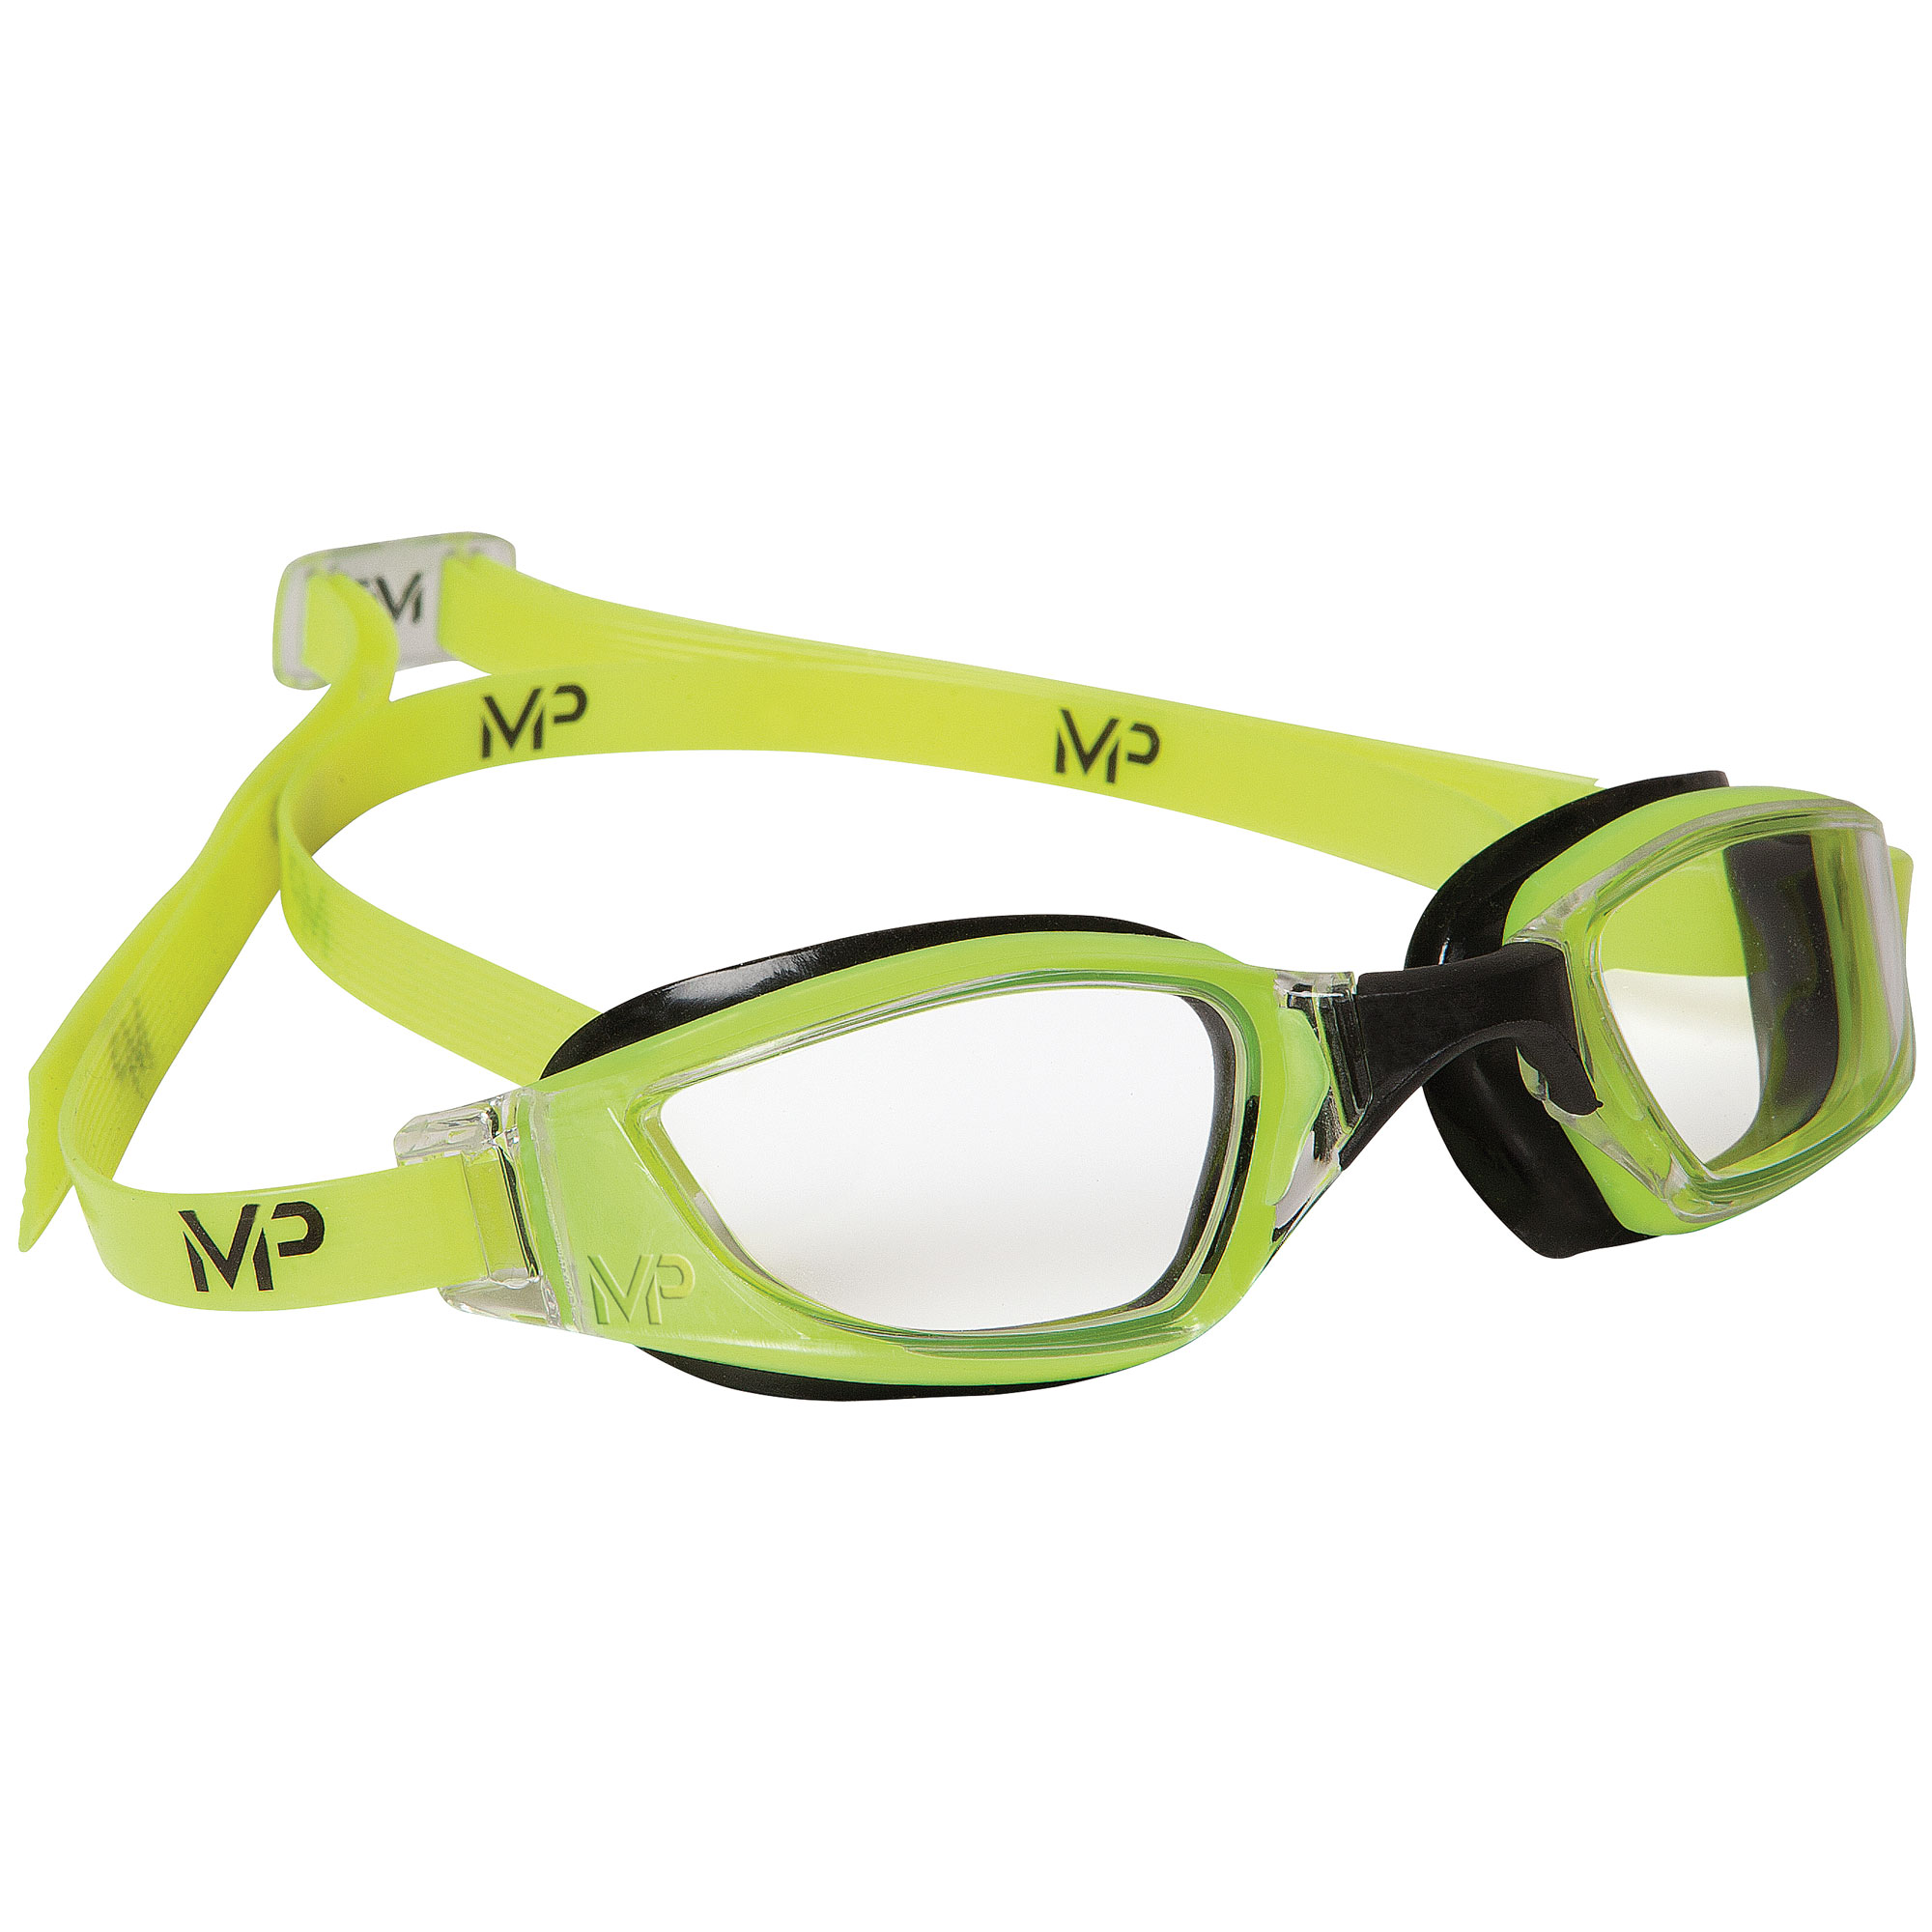 Bargain MP Michael Phelps Xceed Swimming Goggles - Clear Lens Stockists